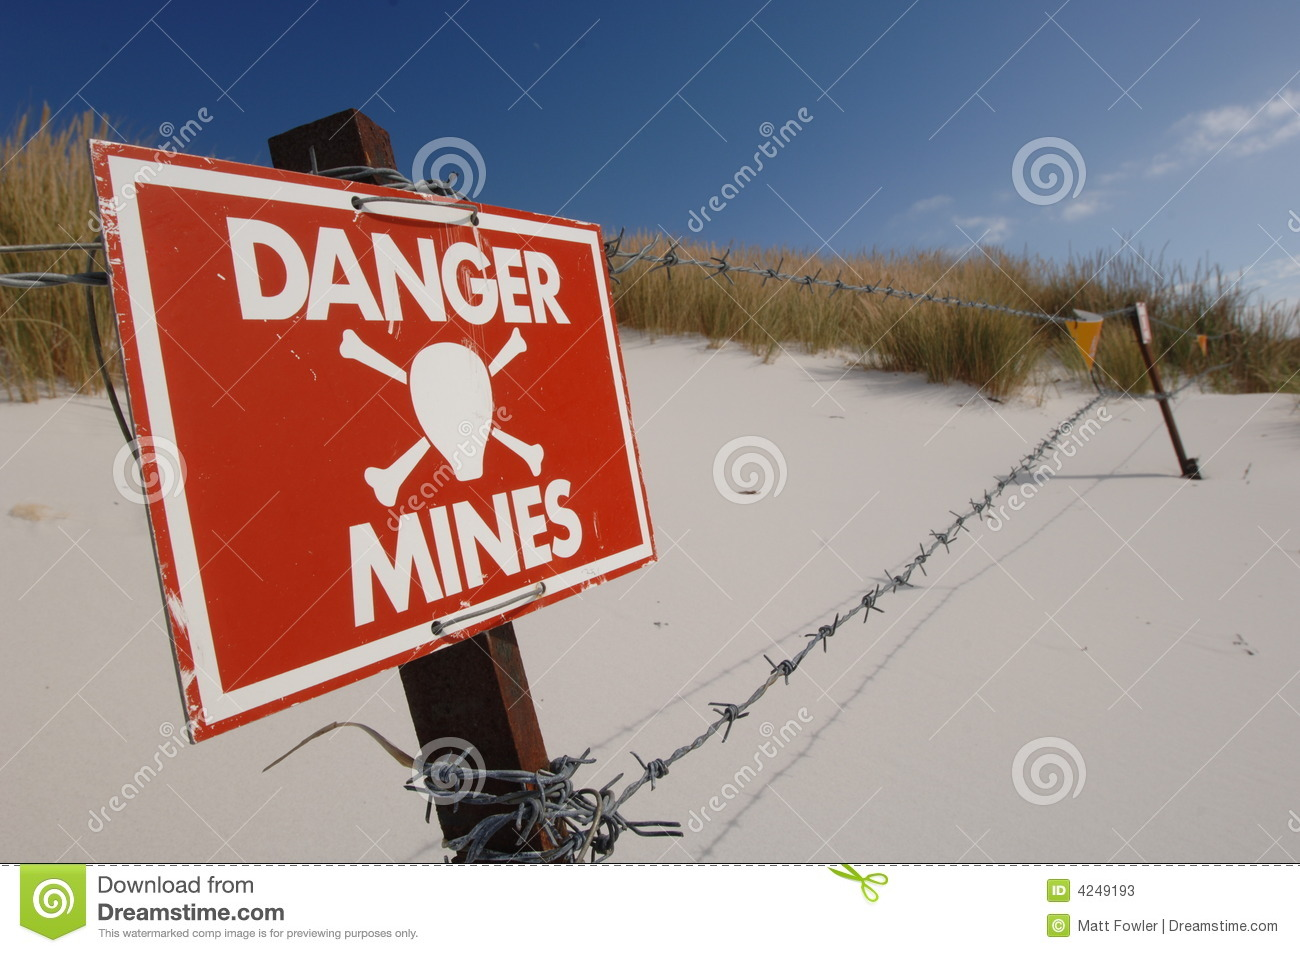 Dangers of Abandoned Mines